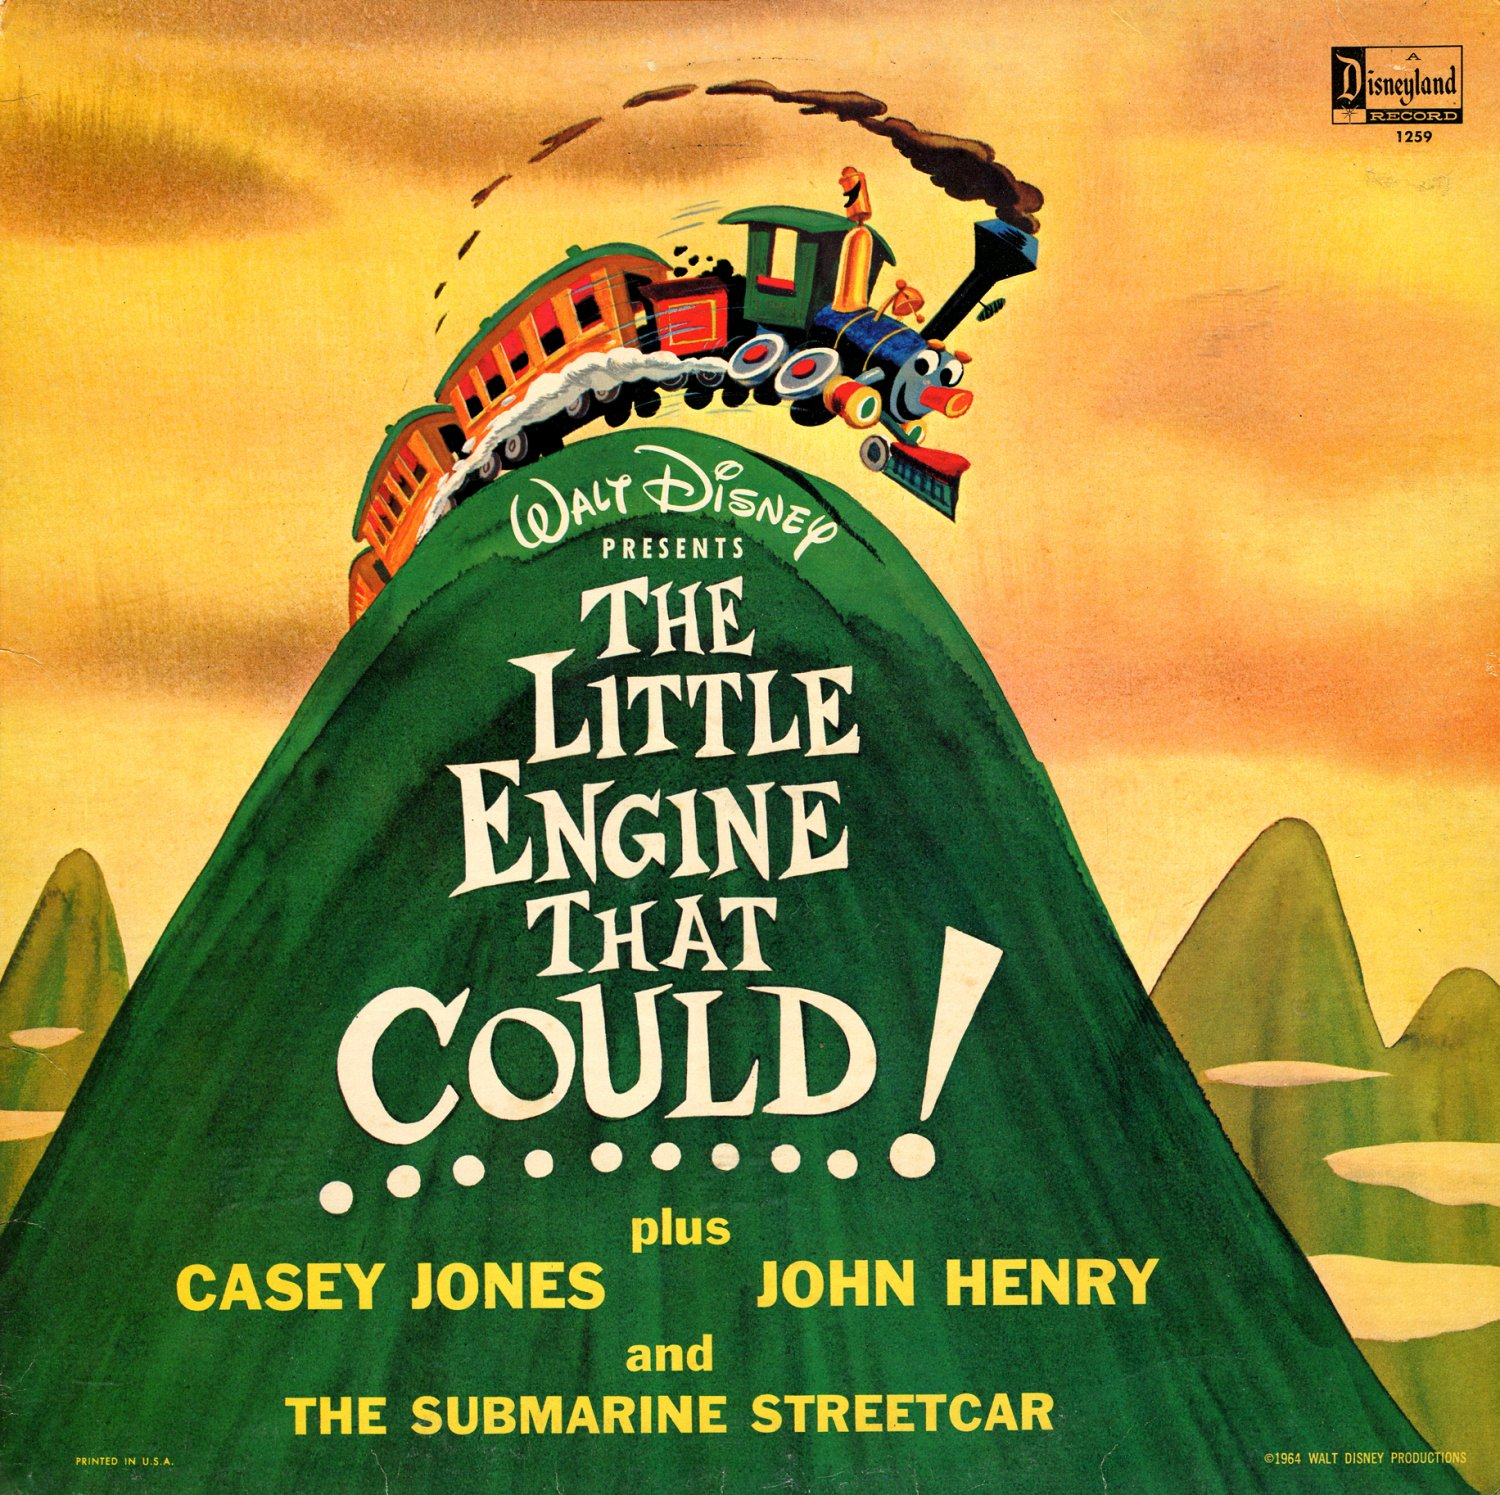 The Little Engine That Could - Walt Disney Story & Song Collection LP/CD